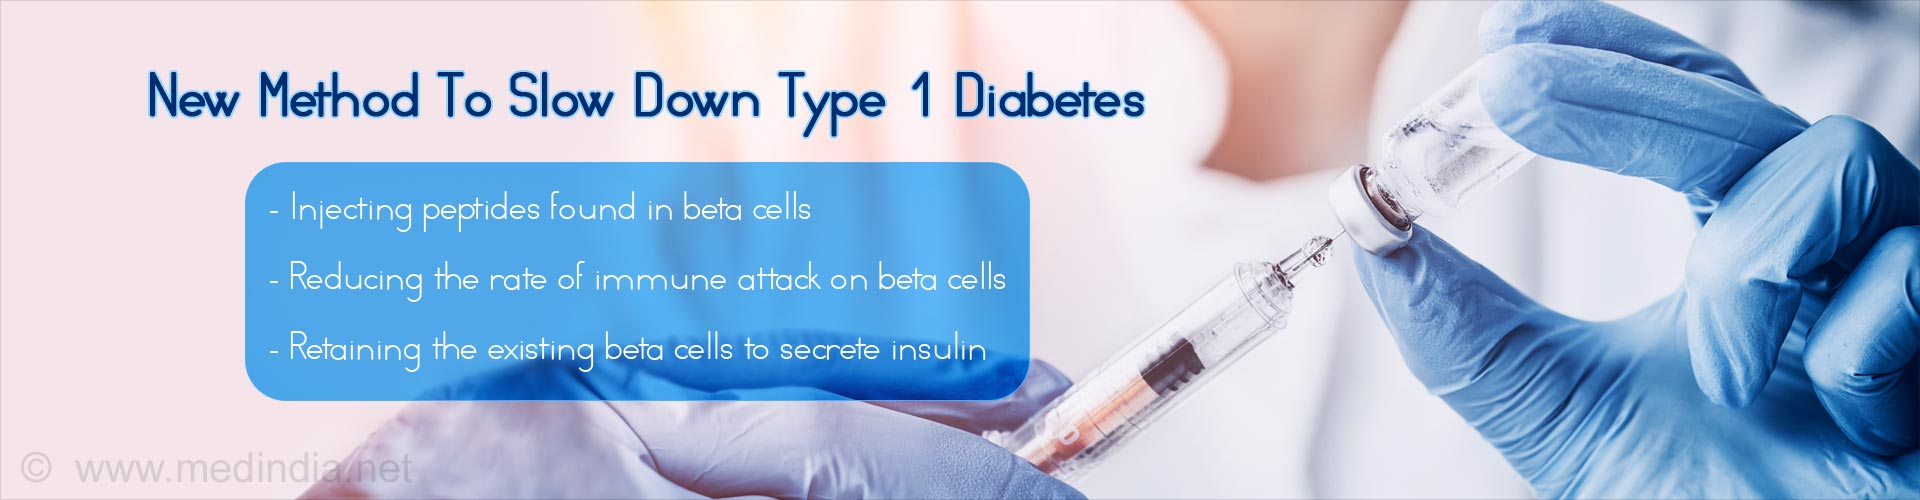 Retraining Immune System With Immune Therapy For Type 1 Diabetes